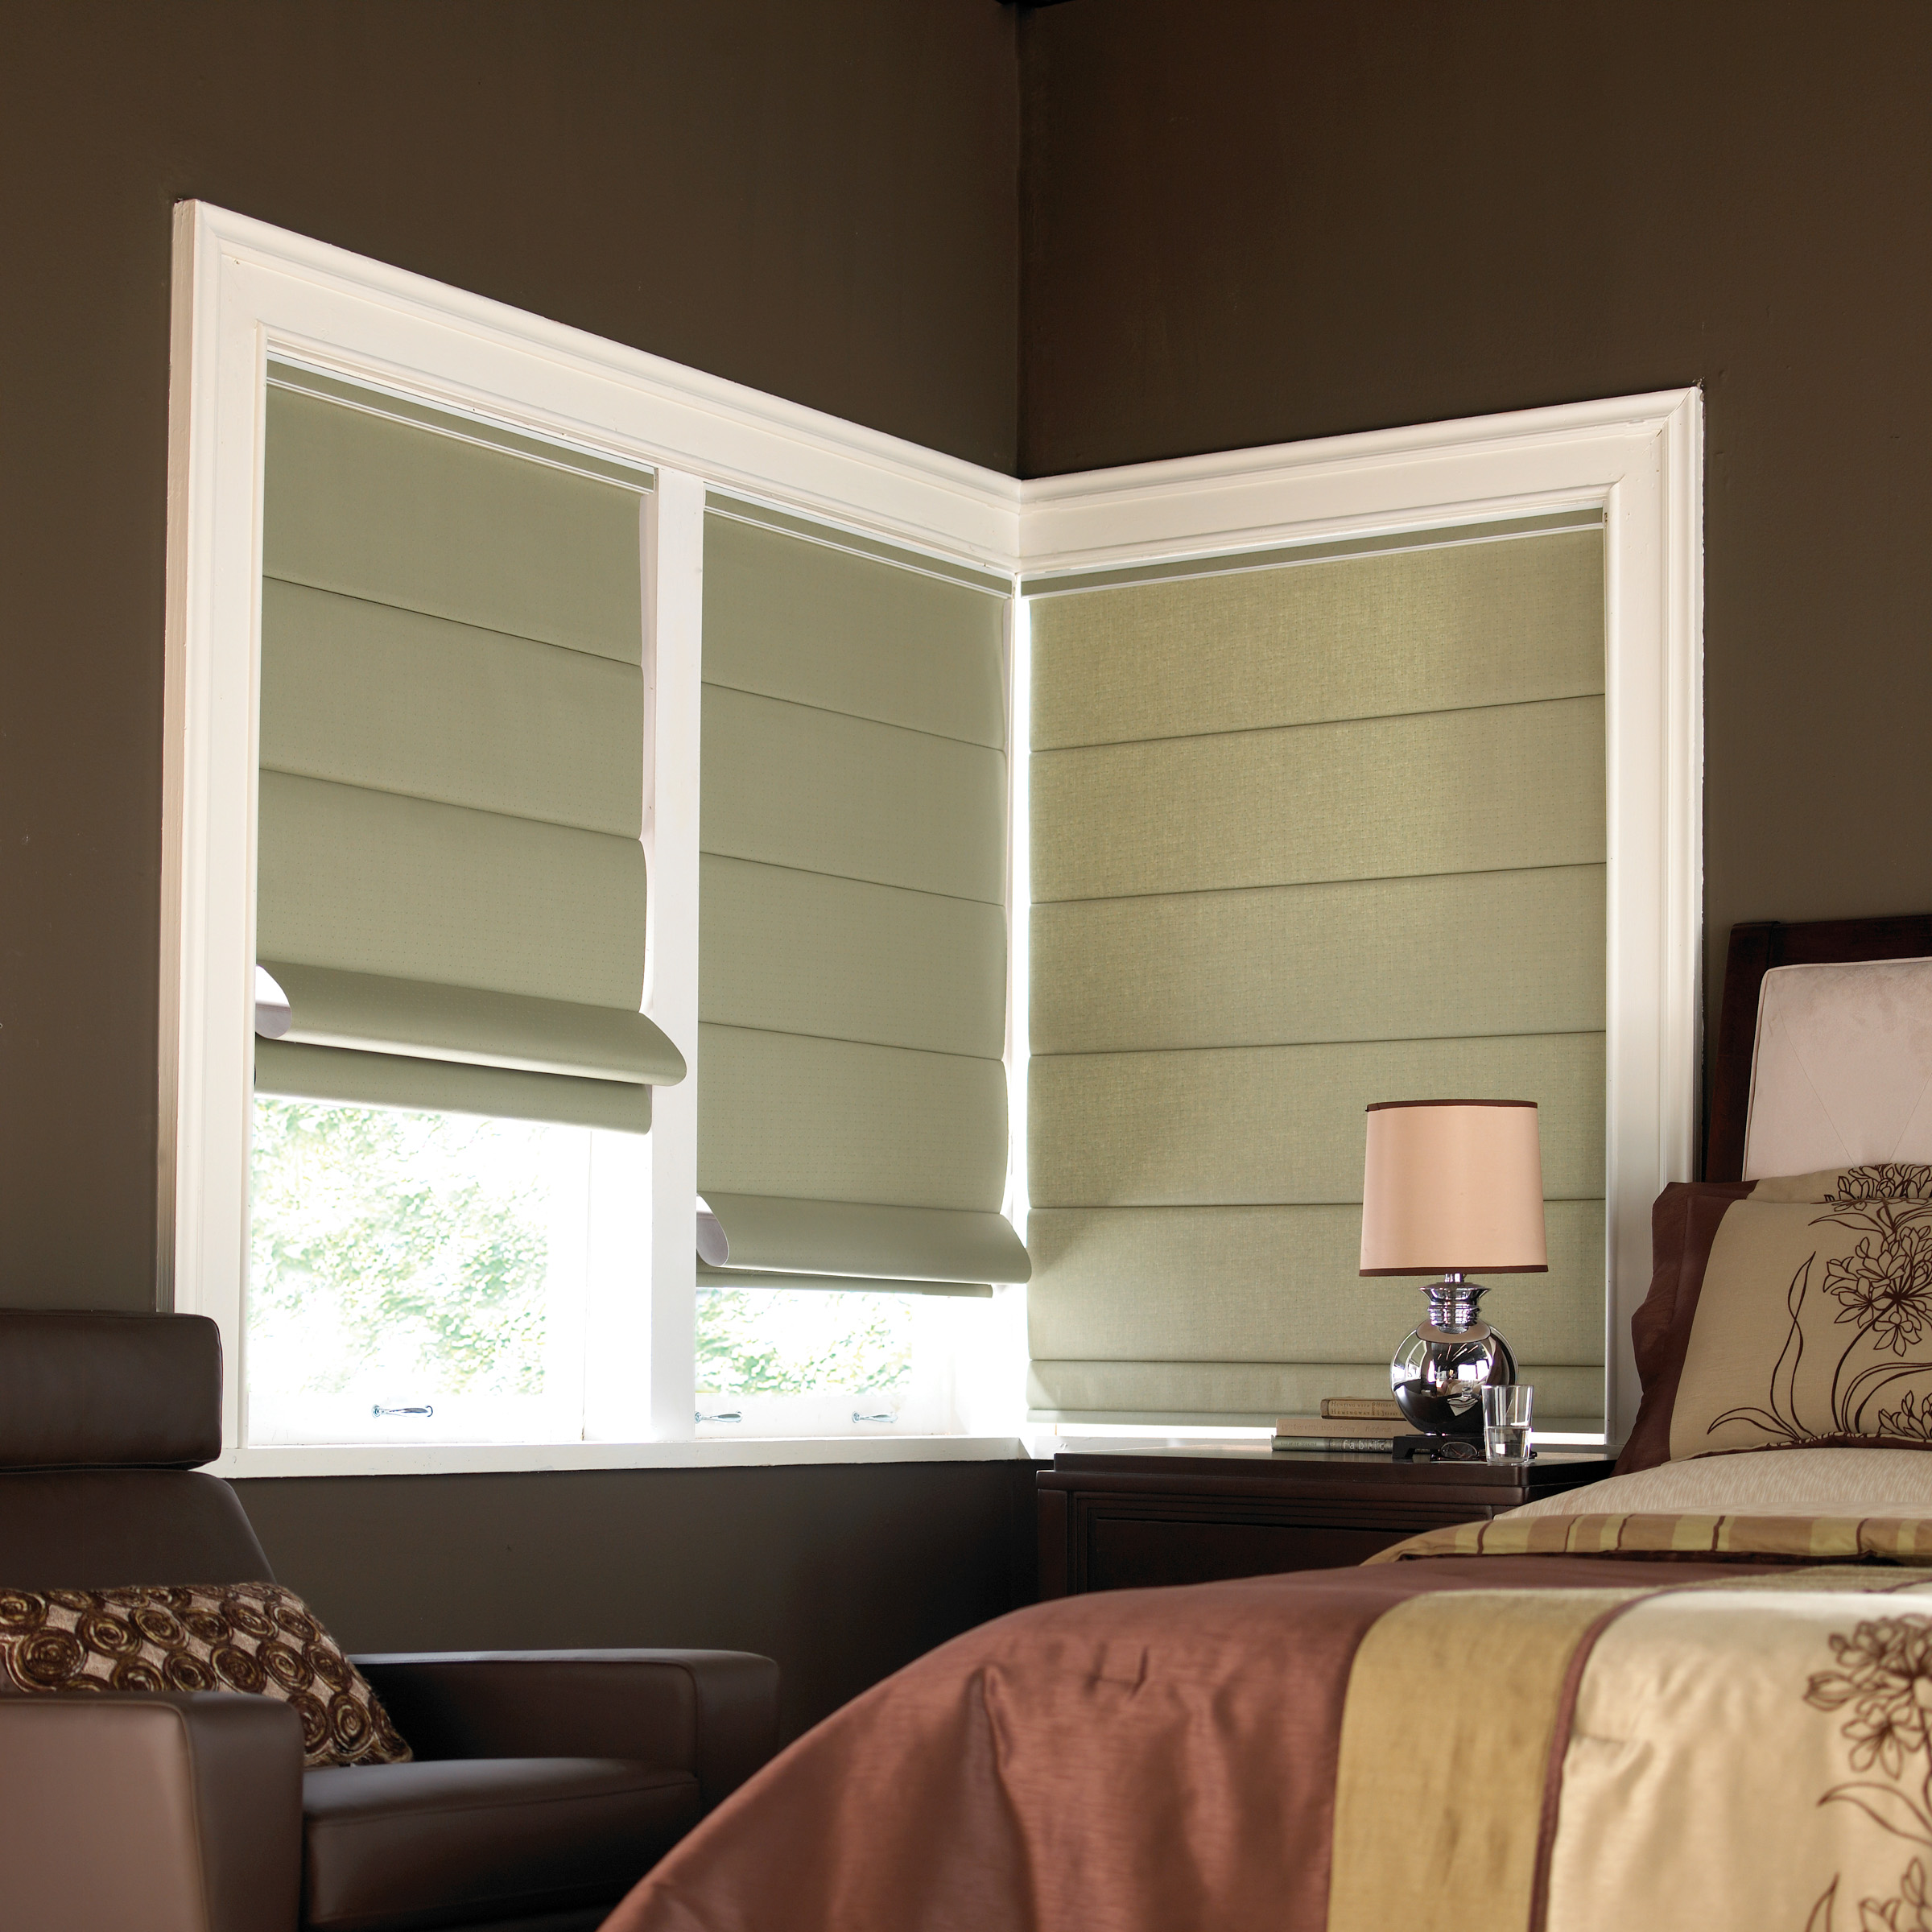 Where To Buy Roman Shades Wholesale Roman Shades And Manufacturer Elitewf